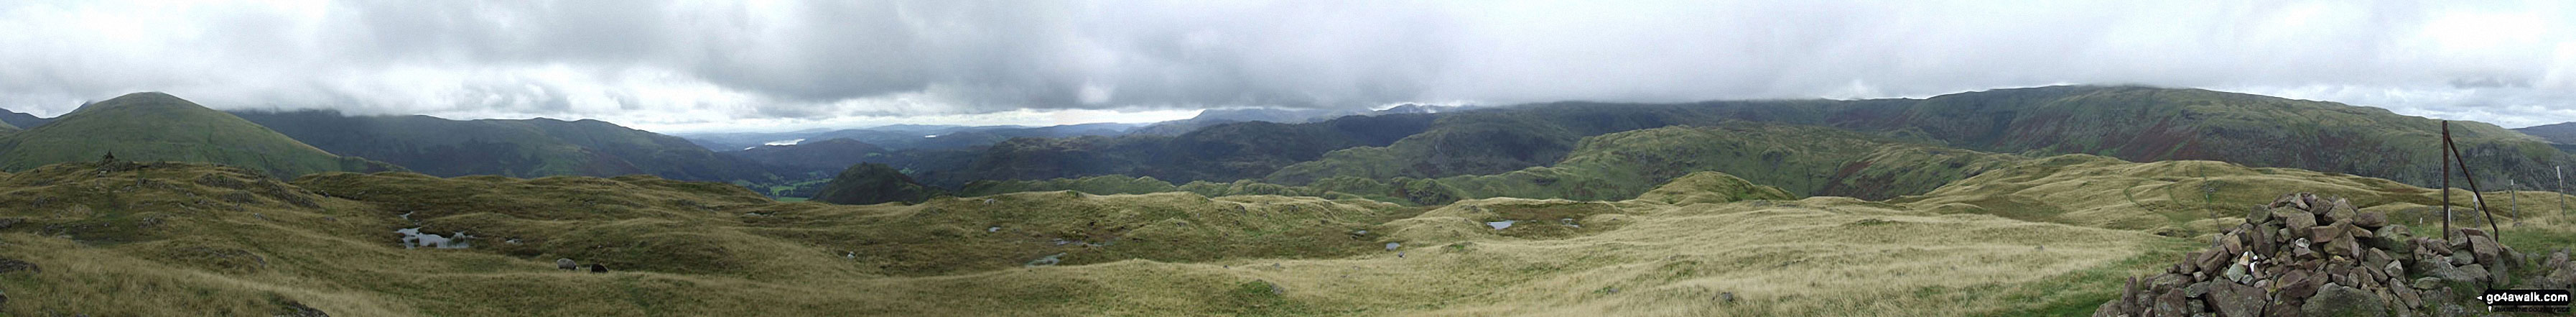 Helm Crag, Gibson Knott, Calf Crag, Greenup Edge and The Wythburn Fells from Steel Fell (Dead Pike) summit cairn